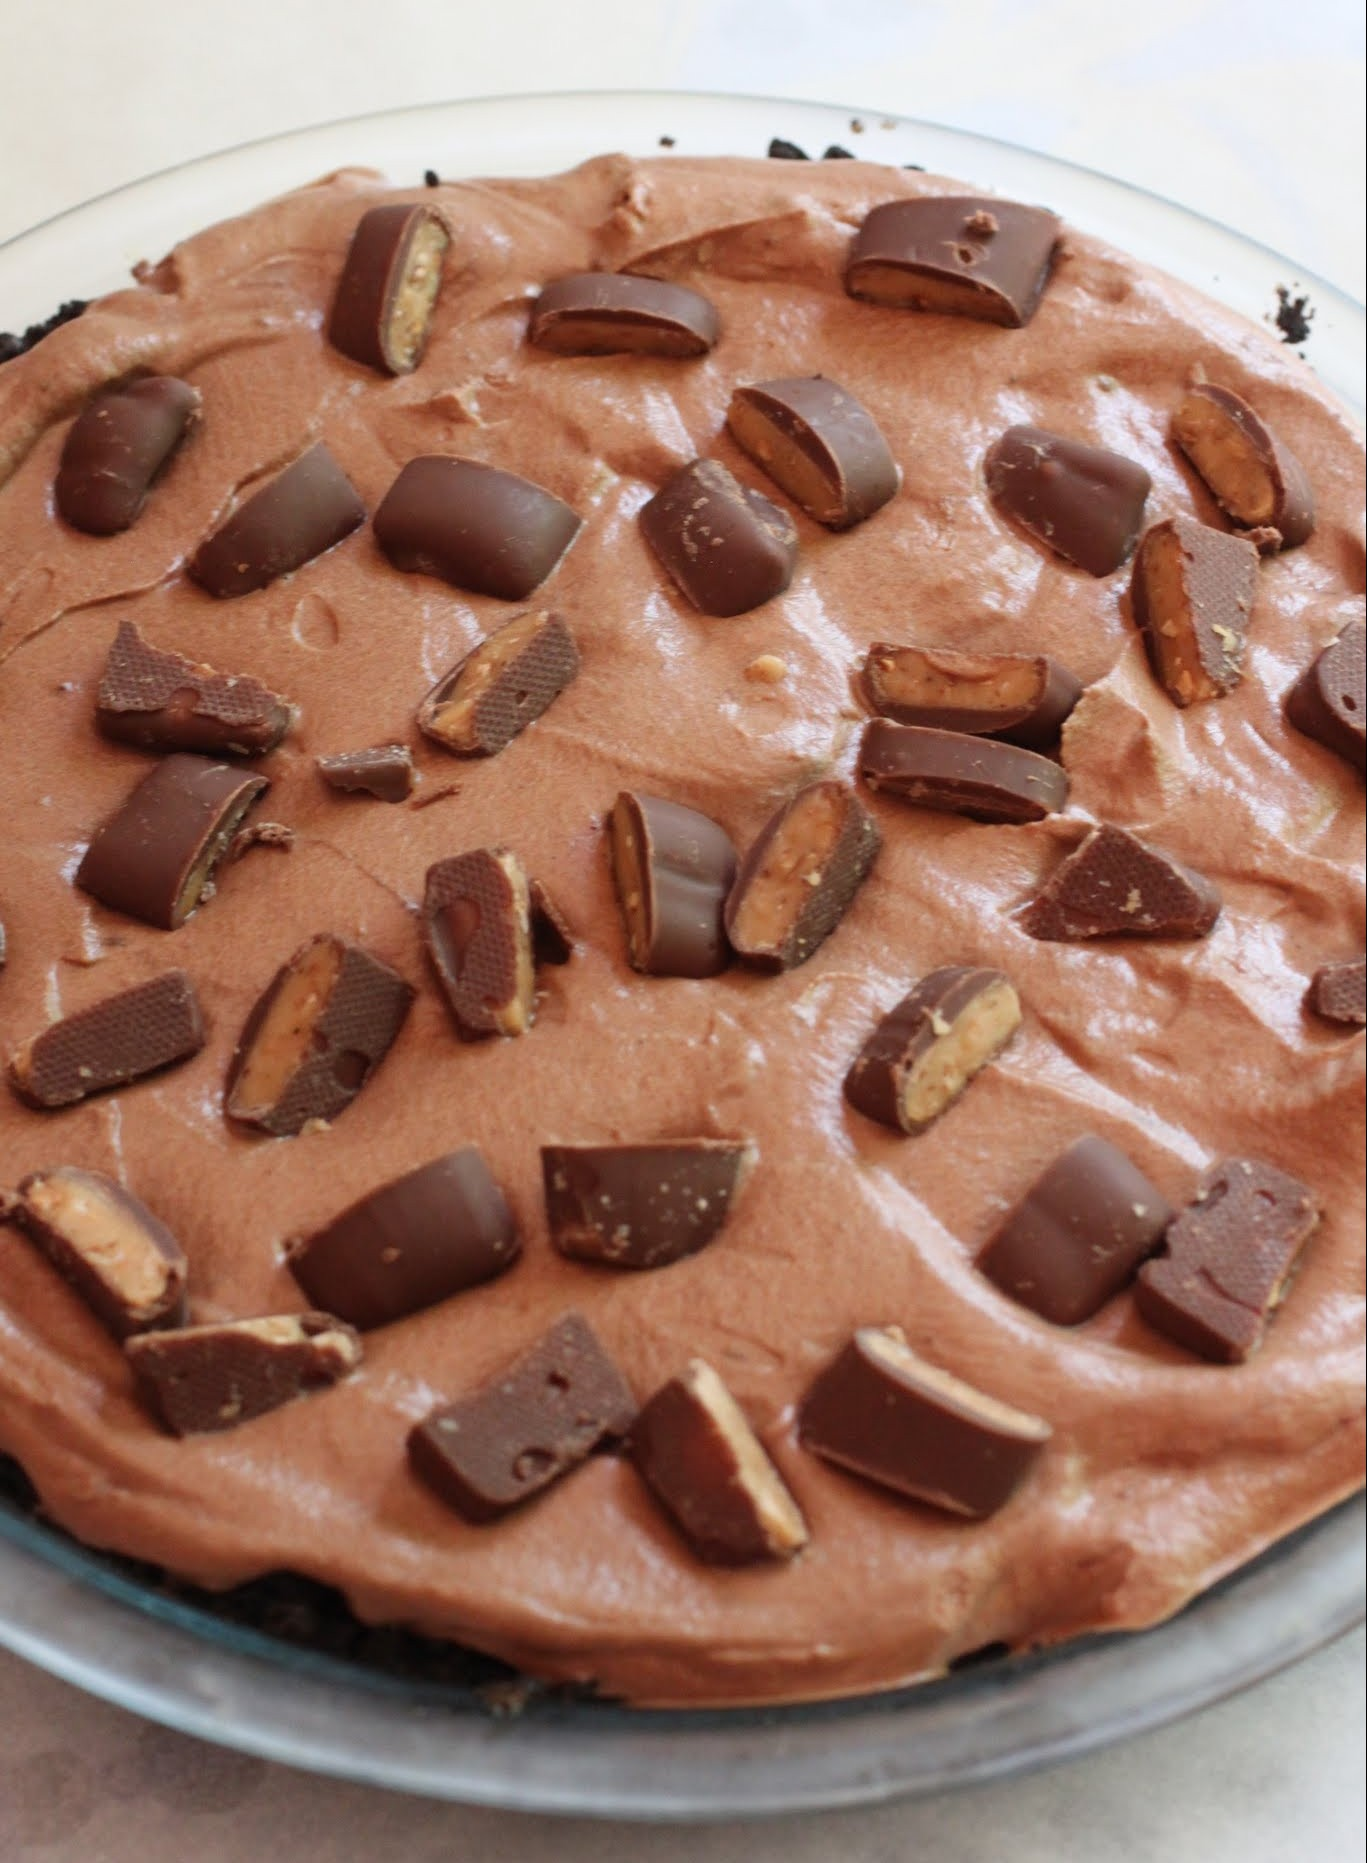 Mocha Mousse Heath Bar Pie